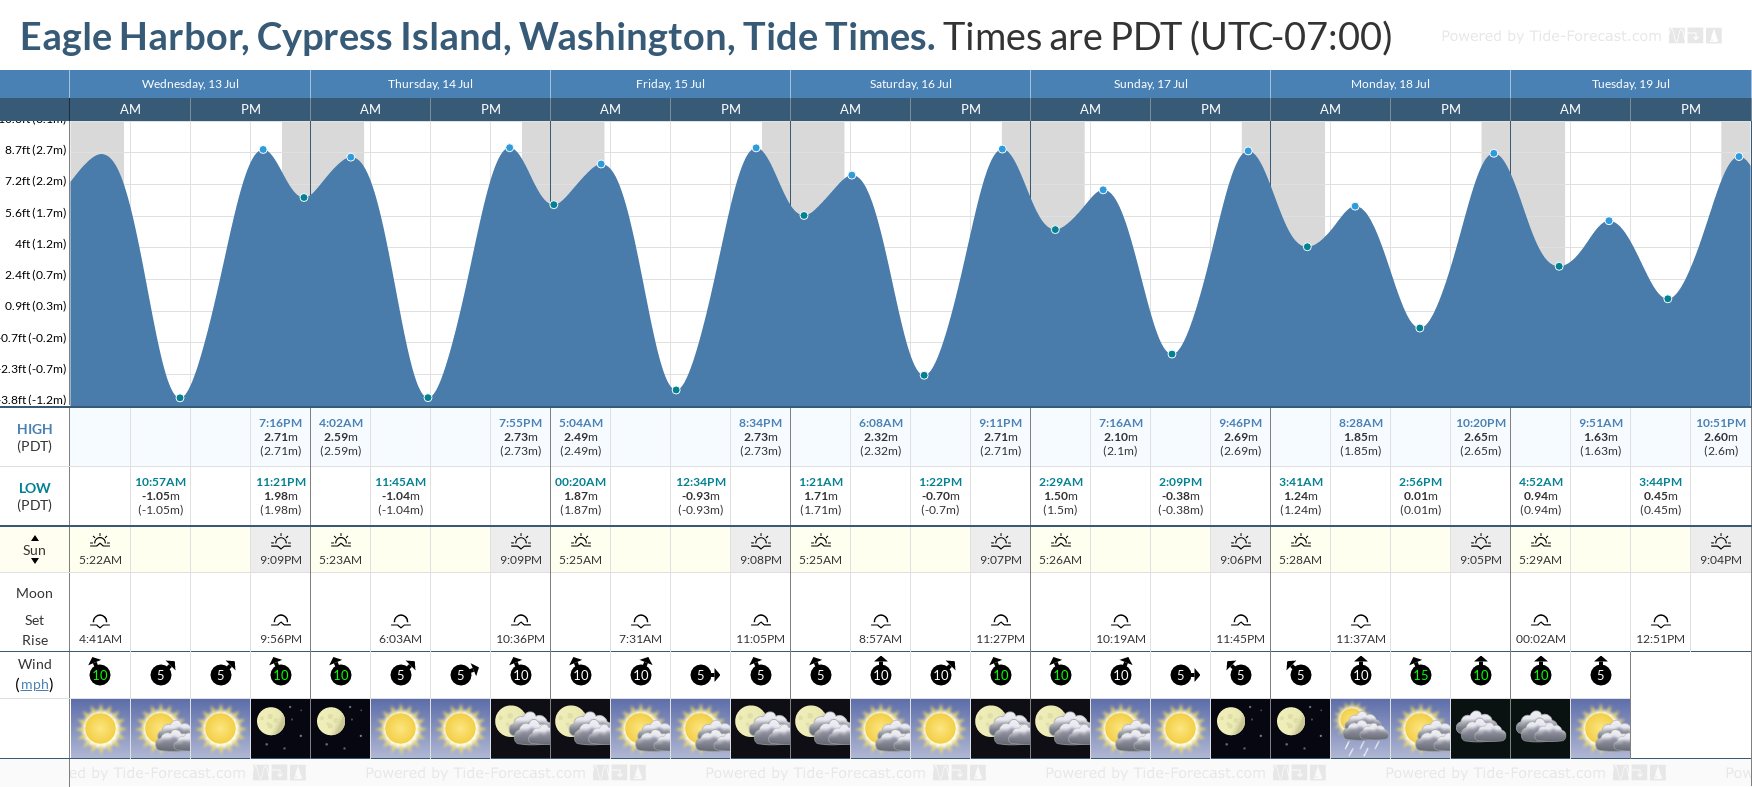 Eagle Harbor, Cypress Island, Washington Tide Chart including high and low tide tide times for the next 7 days